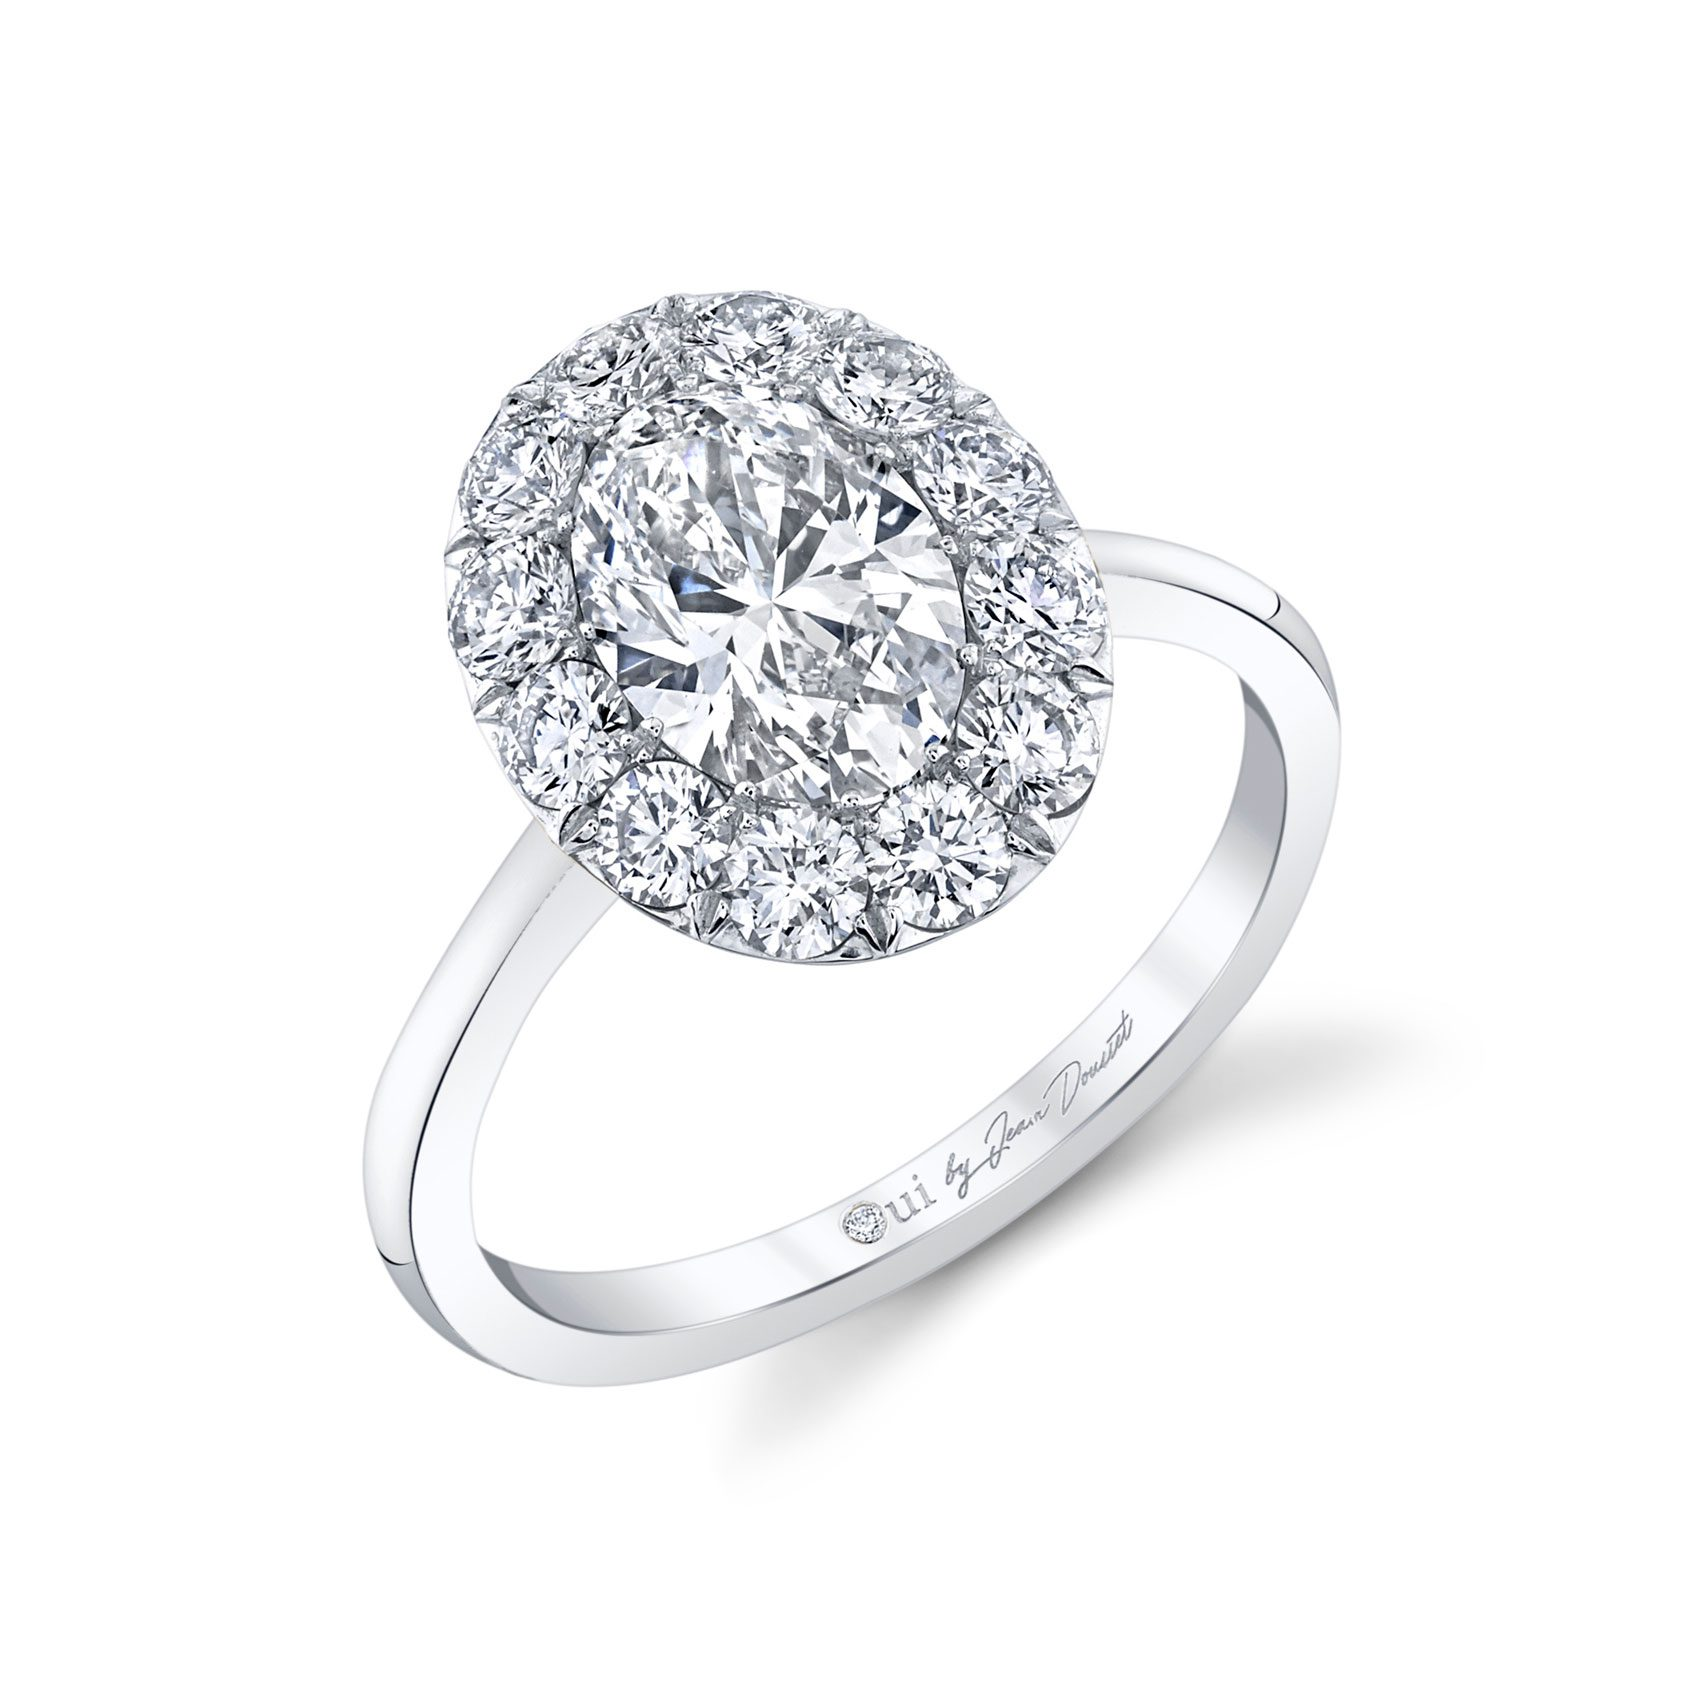 Colette Oval Seamless Solitaire® Engagement Ring with a solid band in 18k White Gold Profile View by Oui by Jean Dousset